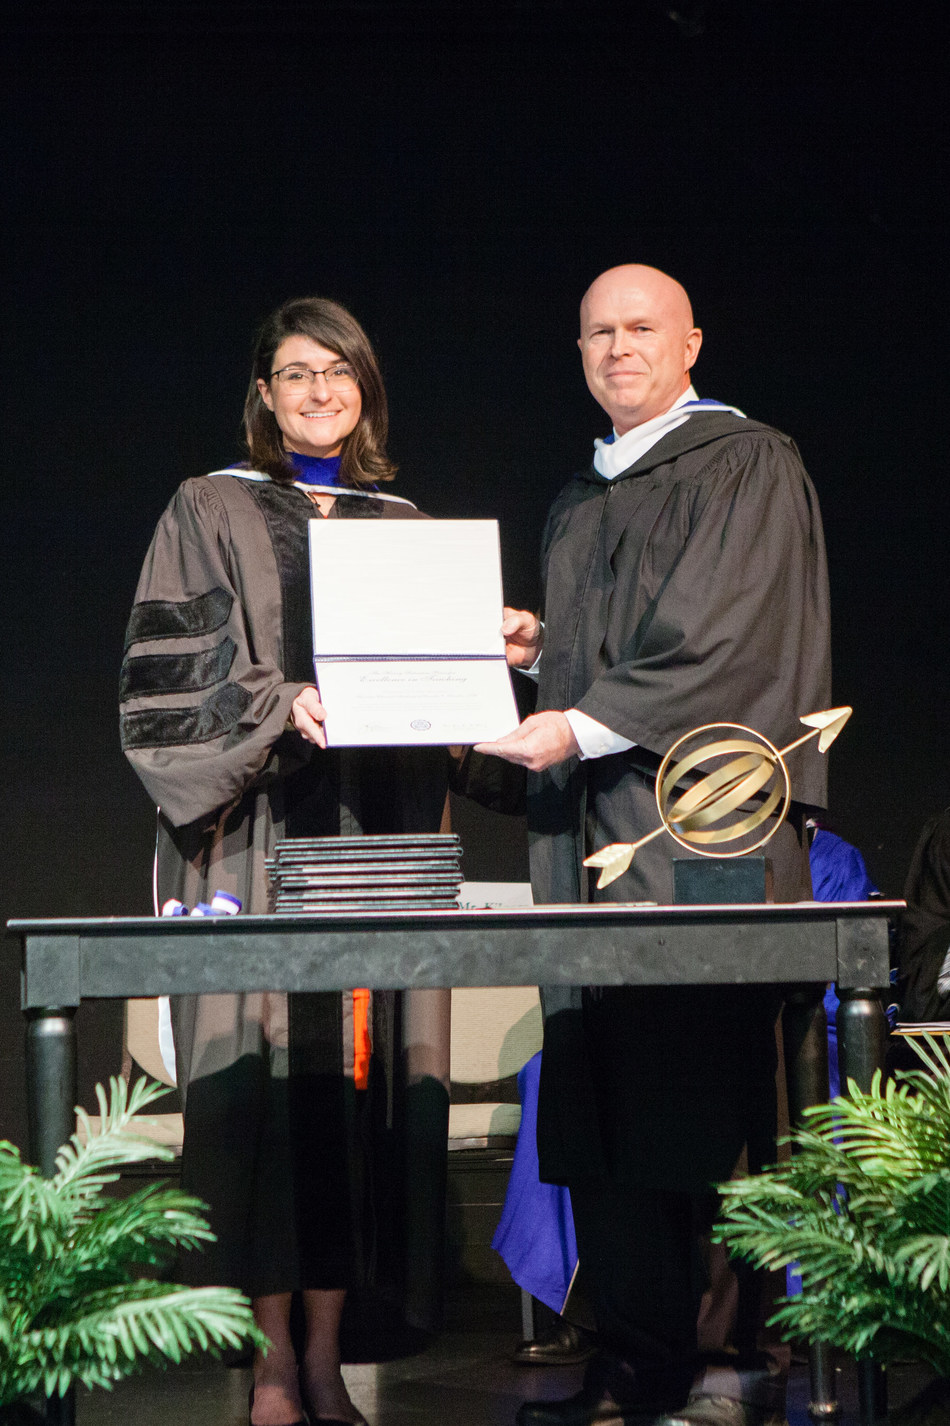 Phil Kilgore, Director of the Barney Charter School Initiative at Hillsdale College presents Dr. Kathleen O'Toole, headmaster of Founders Classical Academy with the 2017 Henry Salvatori Prize for Excellence in Teaching